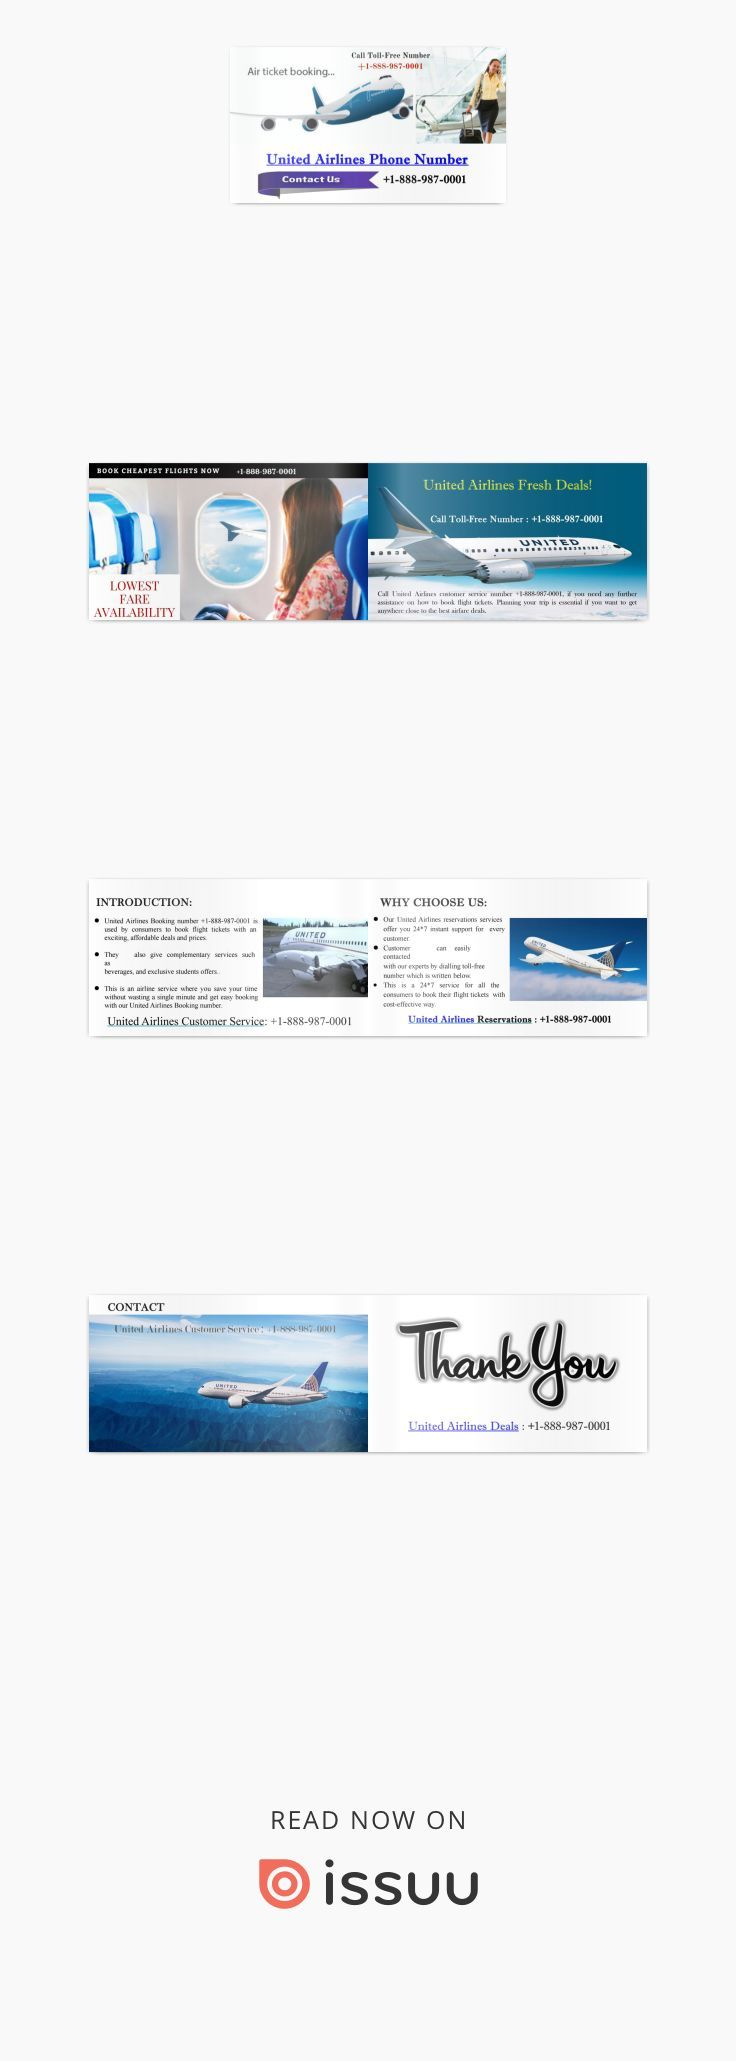 Call +1-888-987-0001 Get Lowest United Airlines Flights